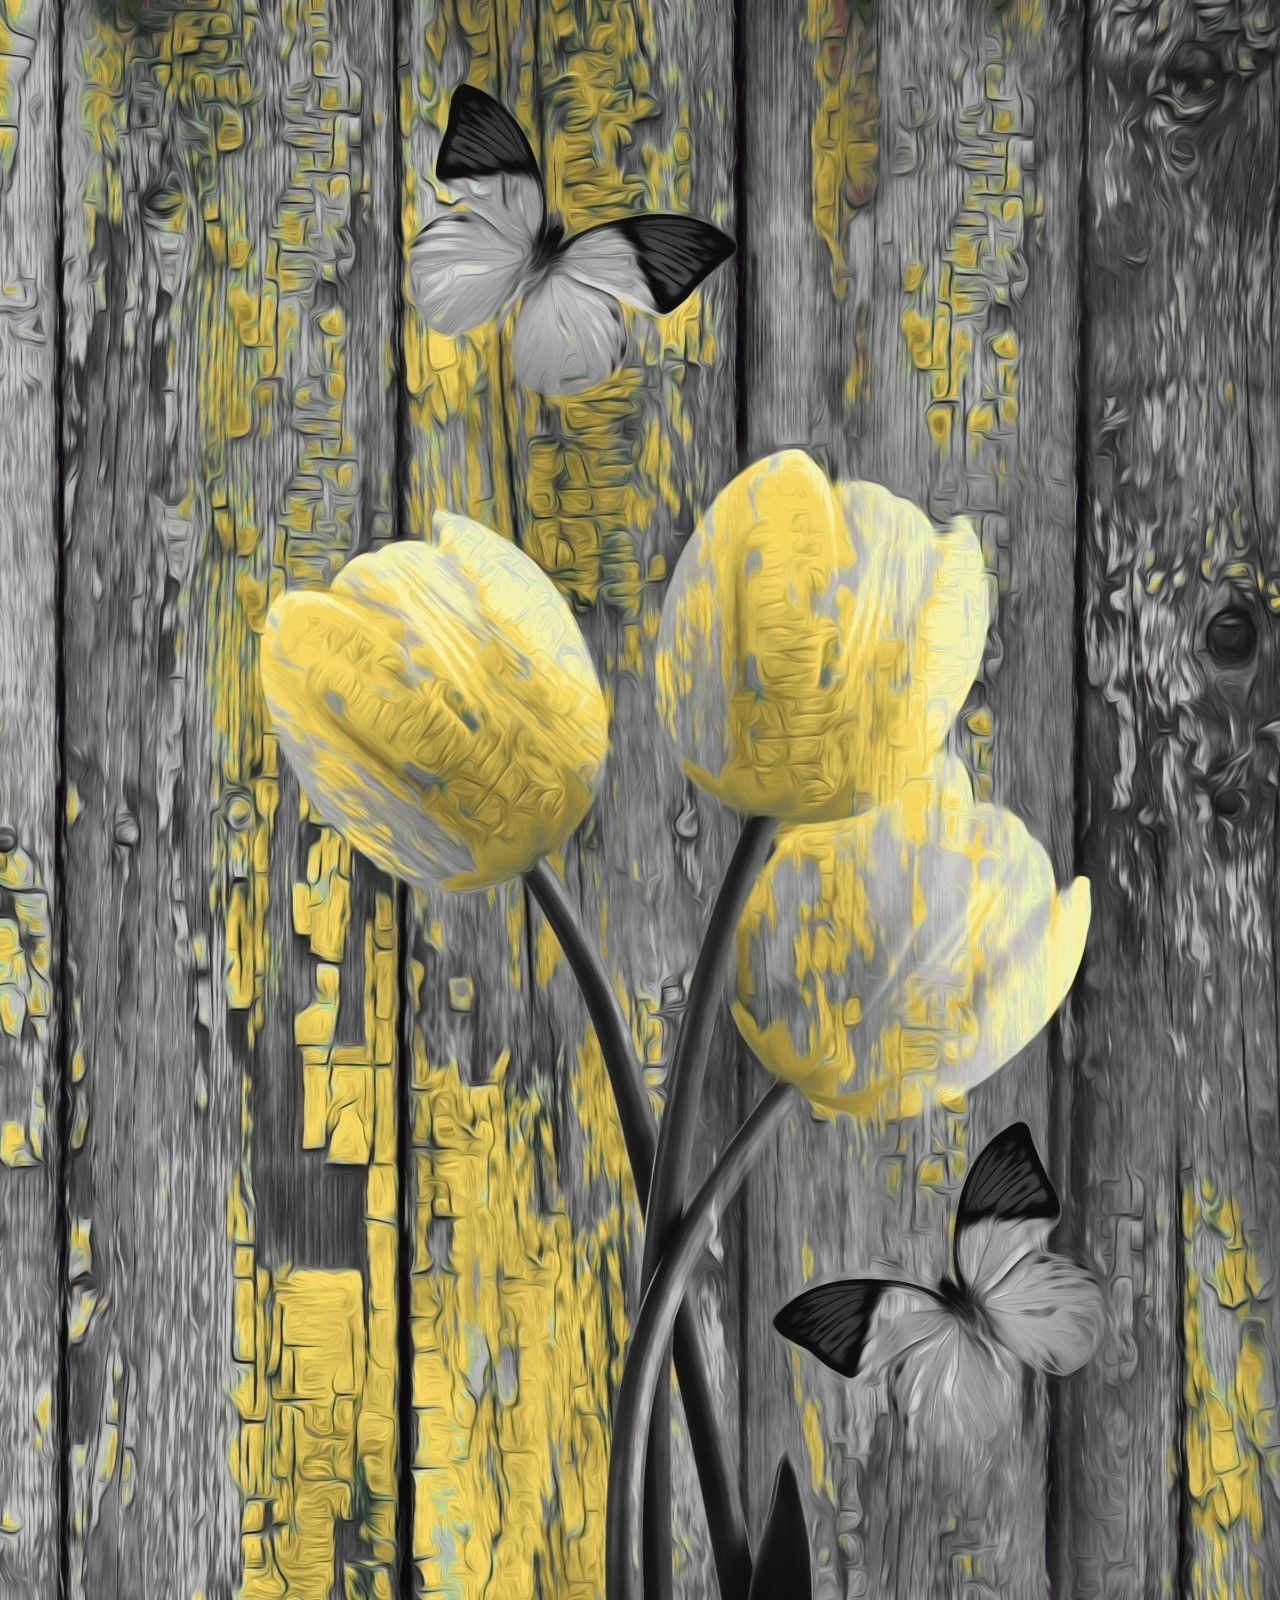 Rustic Modern Home Decor Tulip Flowers Butterfly Artwork Matted Wall ...